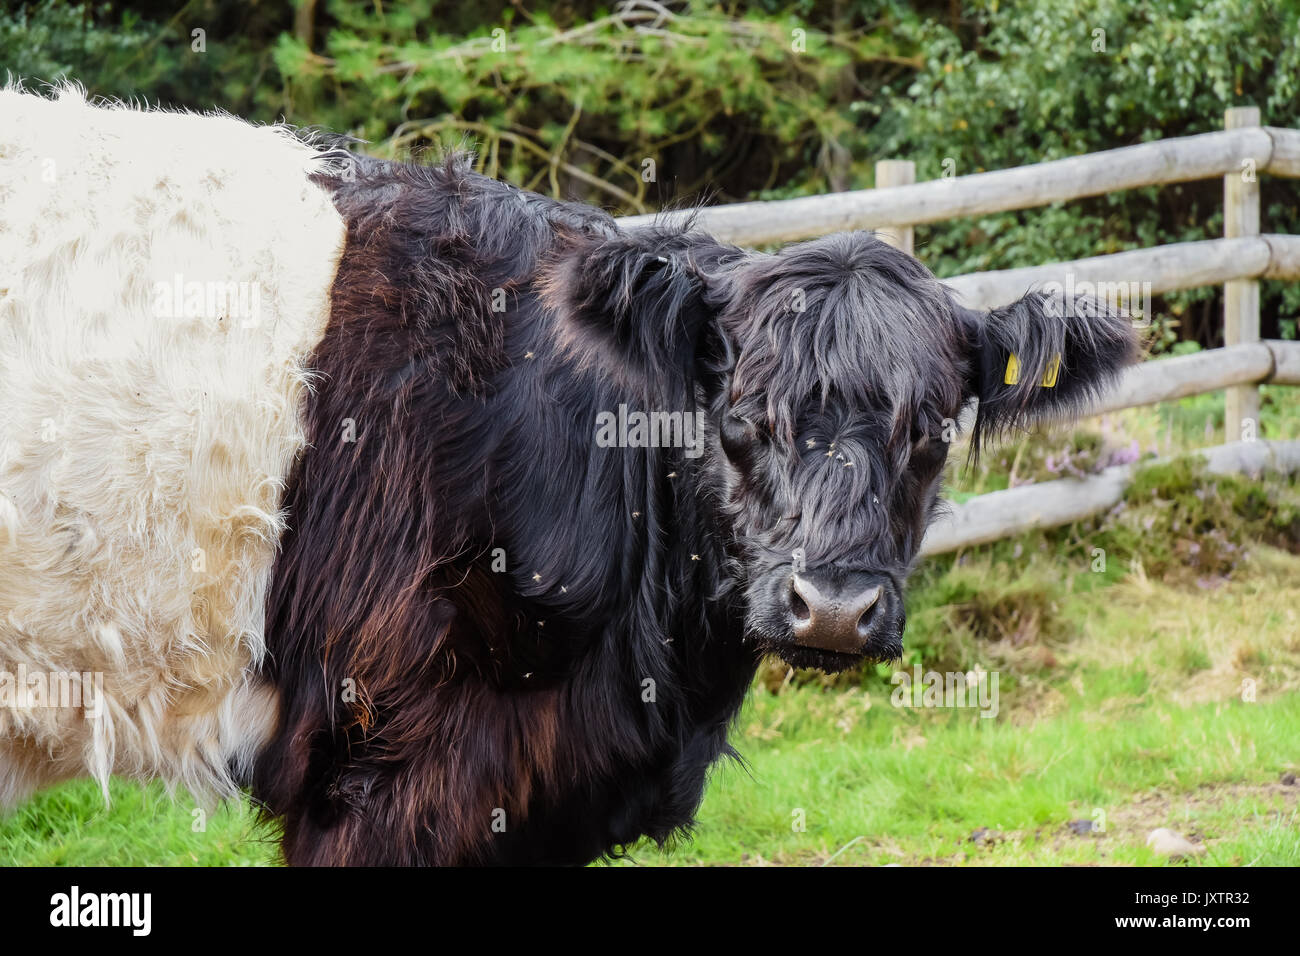 Some of the Belted Galloway cattle that have been introduced onto Cannock Chase Area of Outstanding Natural Beauty to graze and manage the landscape - Stock Image